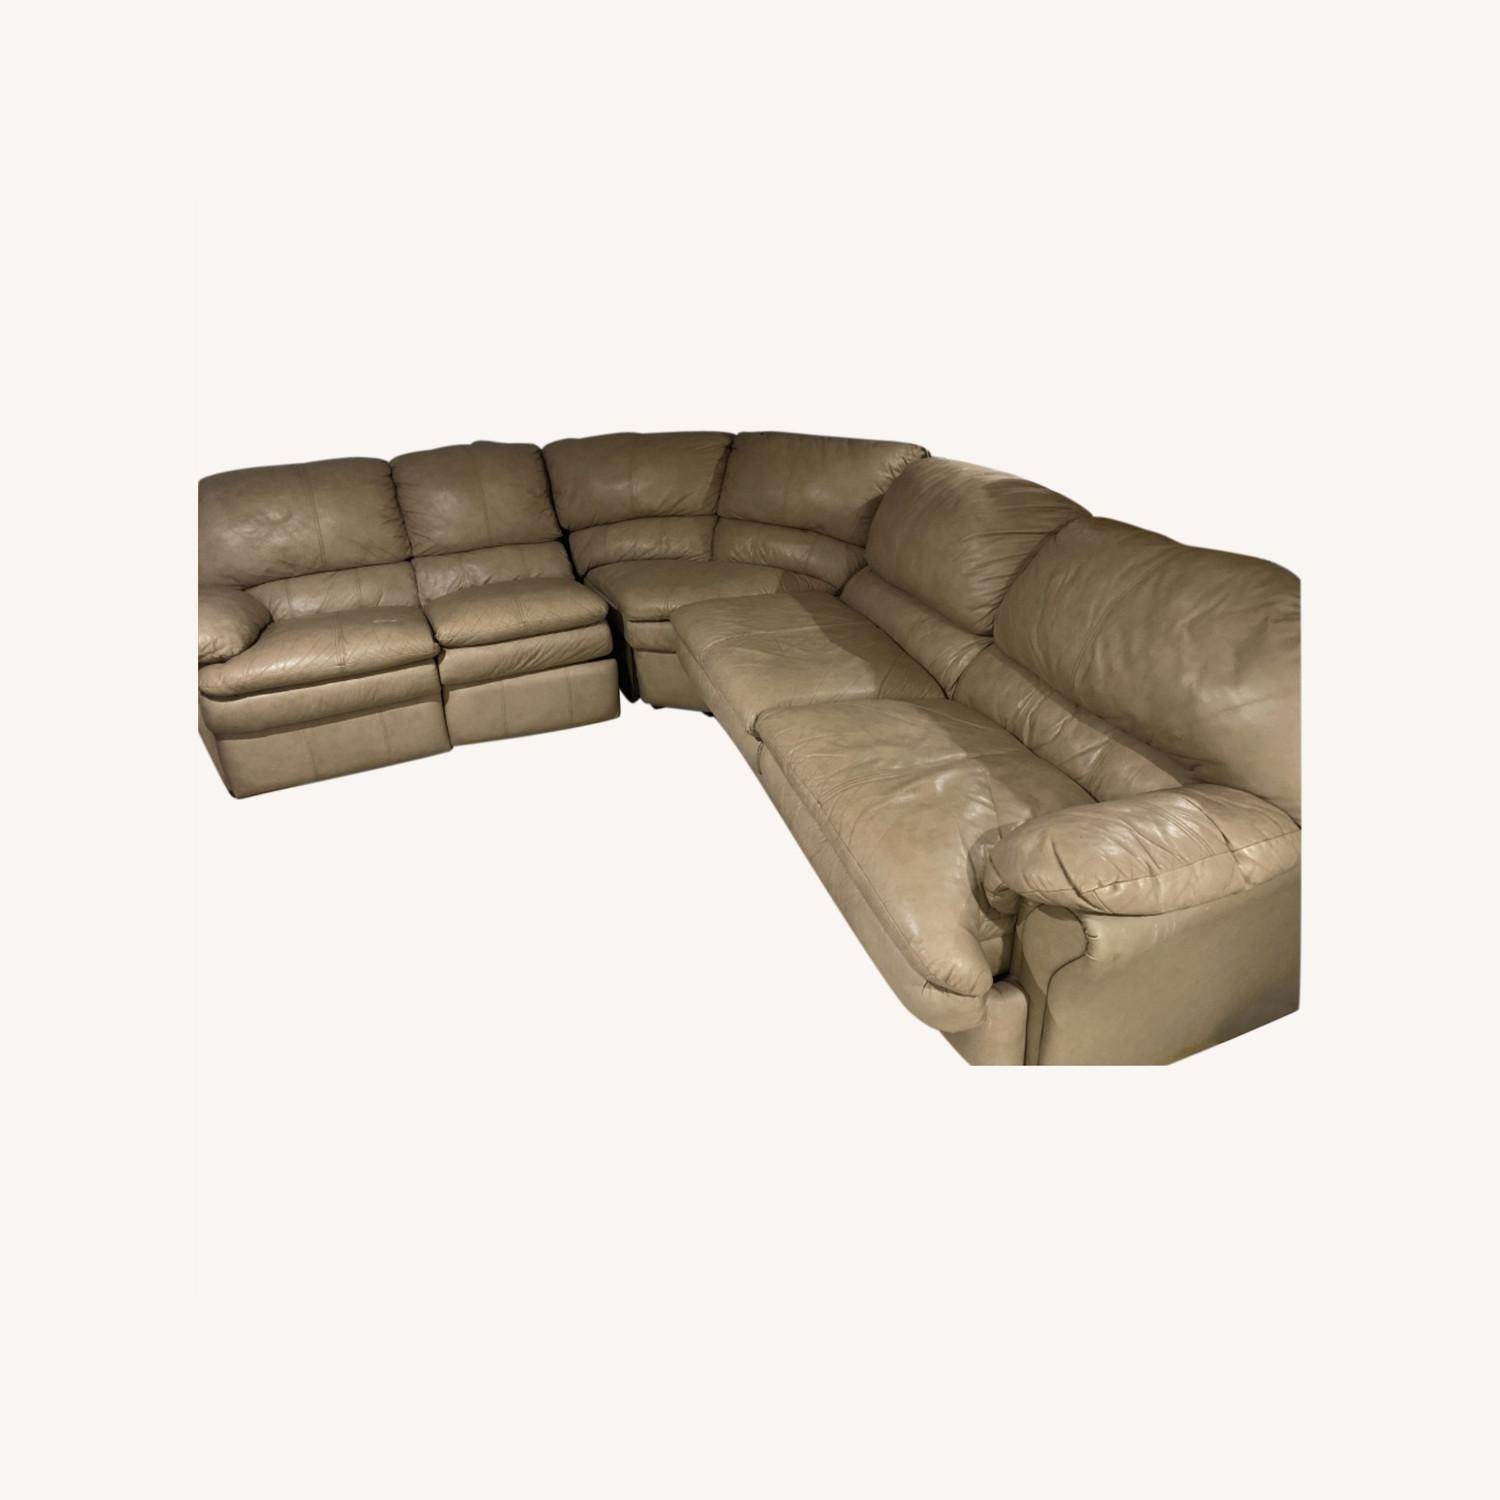 Leather Beige Couch - image-0